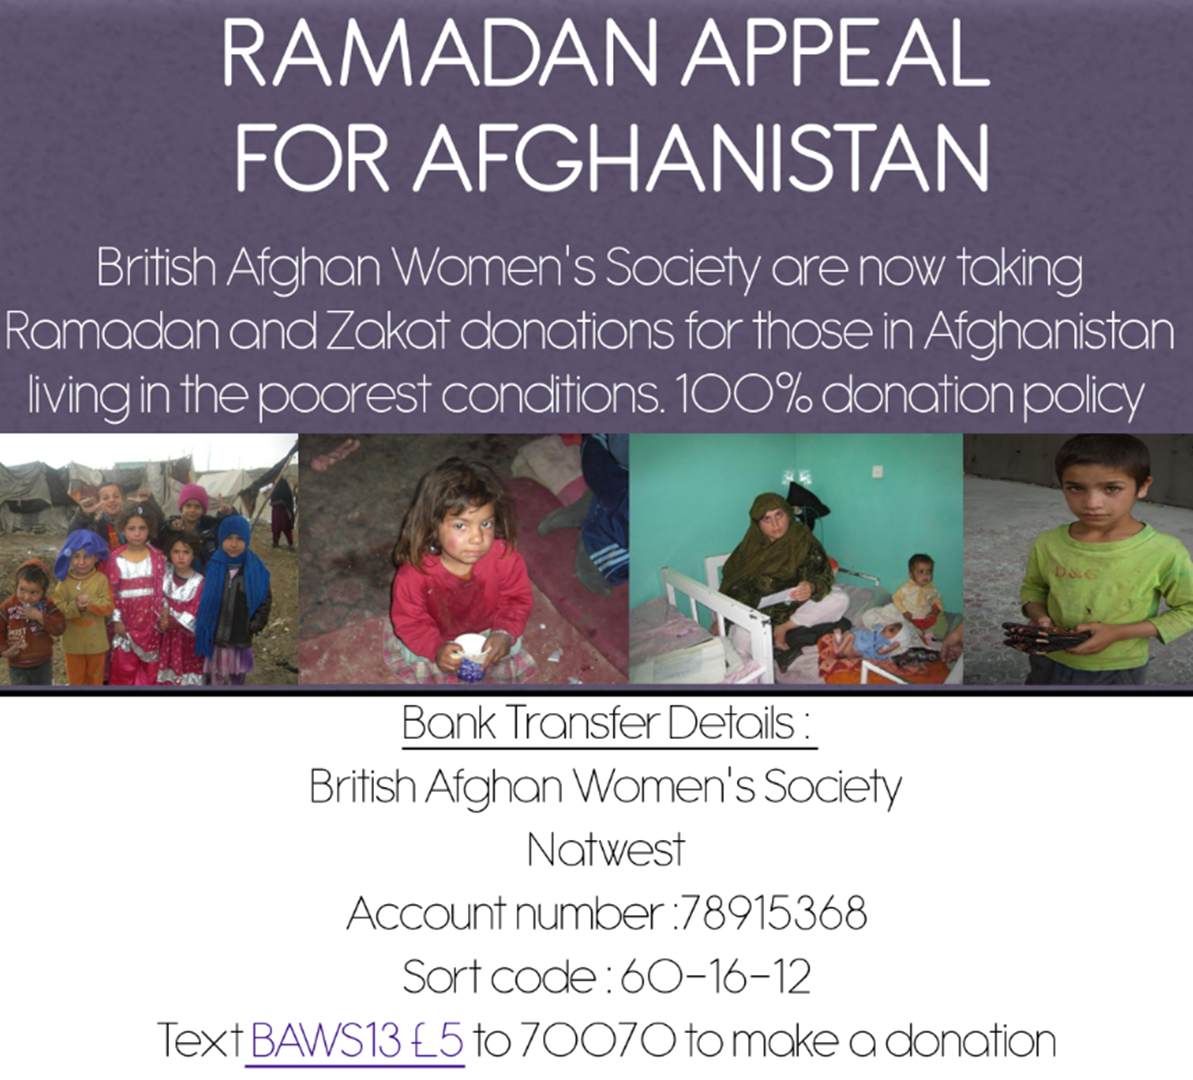 British Afghan Women's Society is fundraising for British Afghan